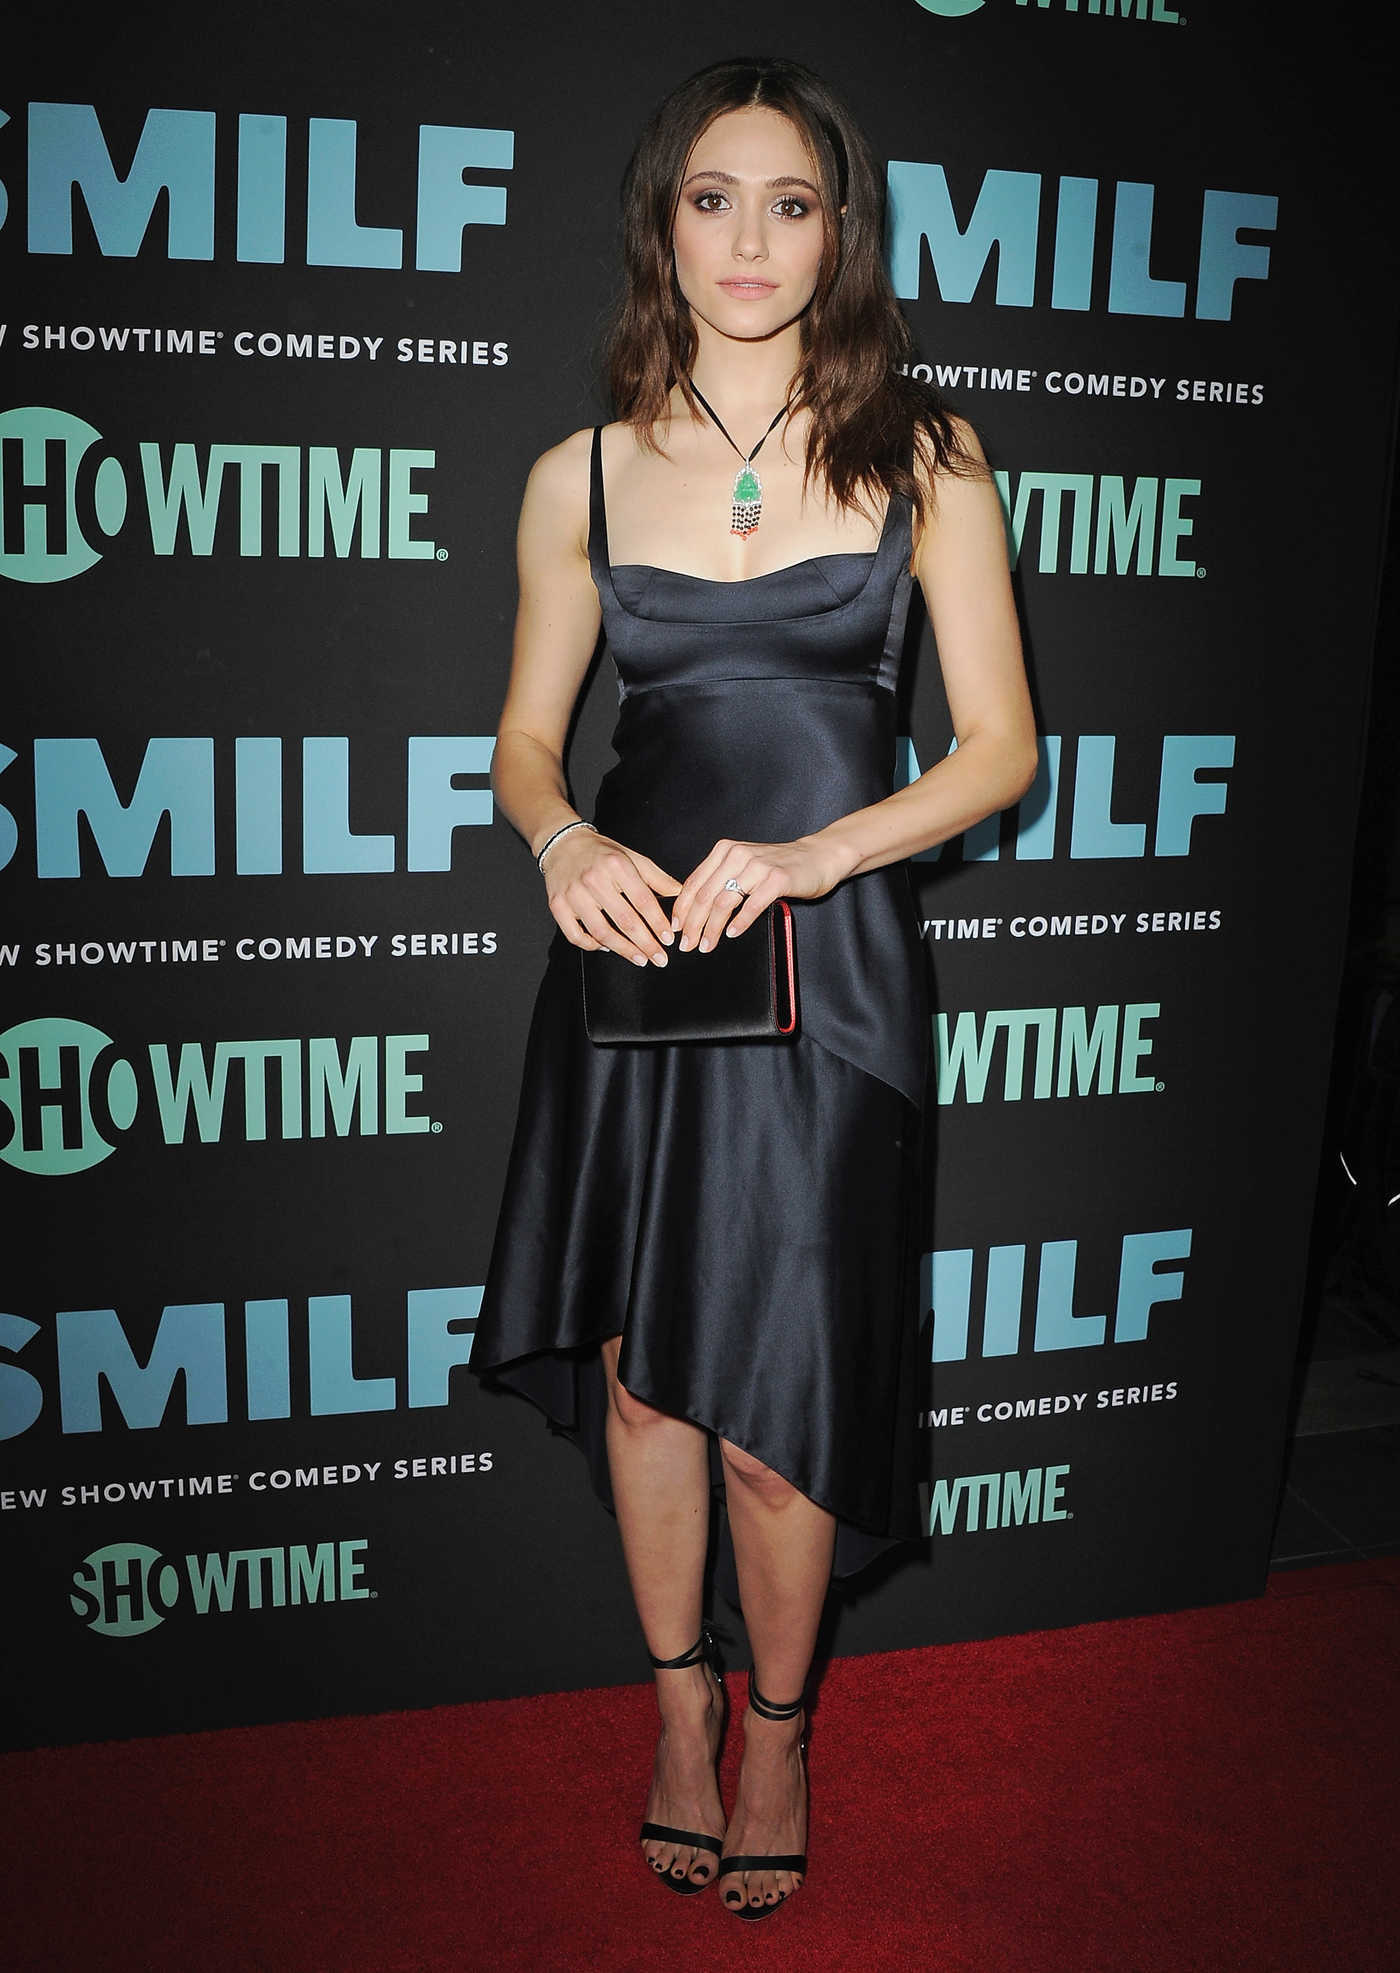 Emmy Rossum at the SMILF Premiere in Los Angeles 10/09/2017